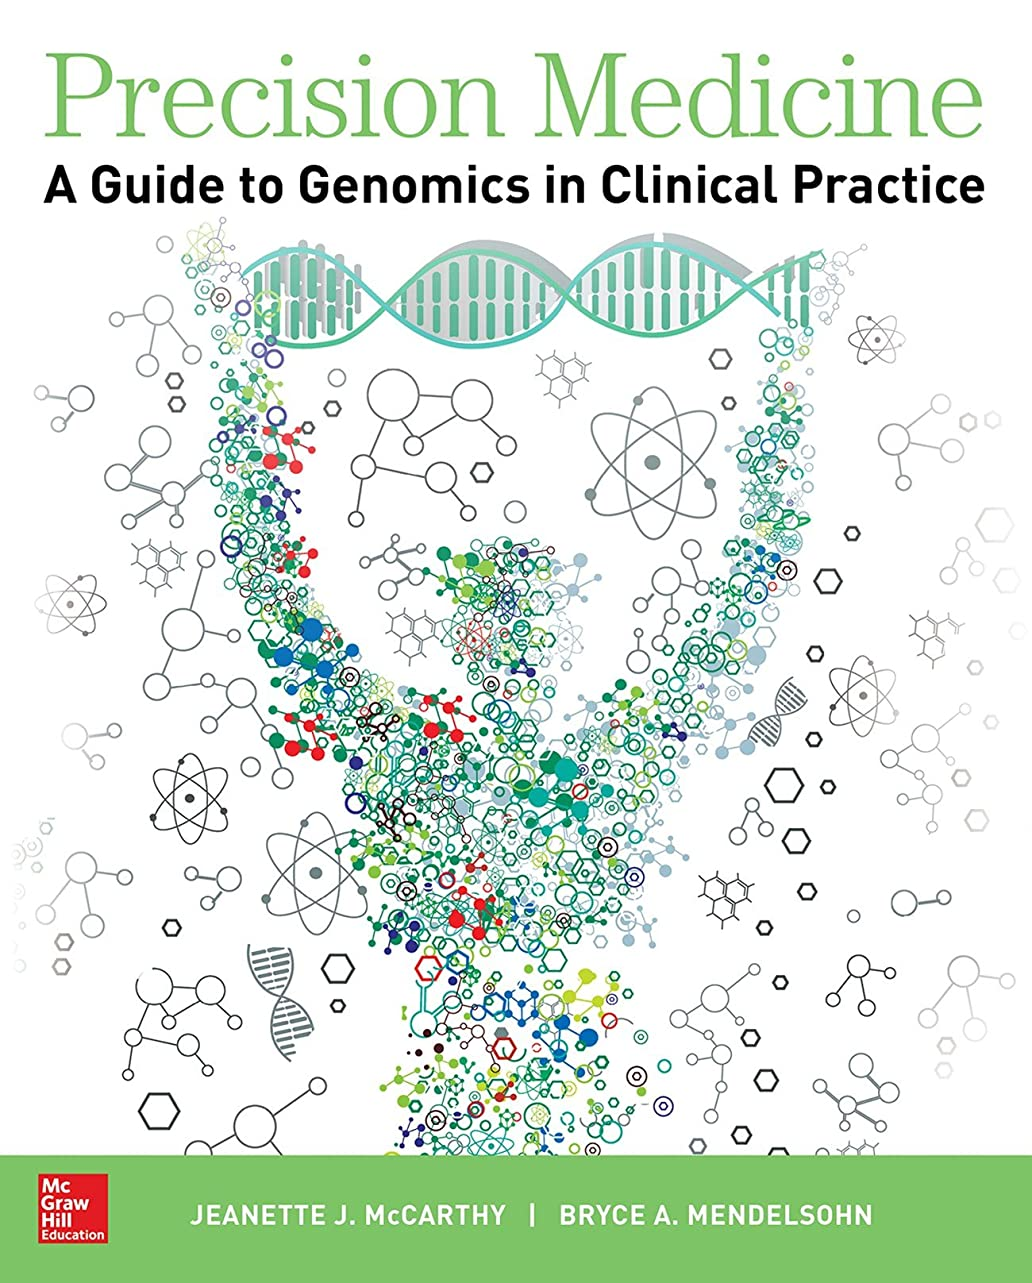 願う日常的にブロンズPrecision Medicine: A Guide to Genomics in Clinical Practice